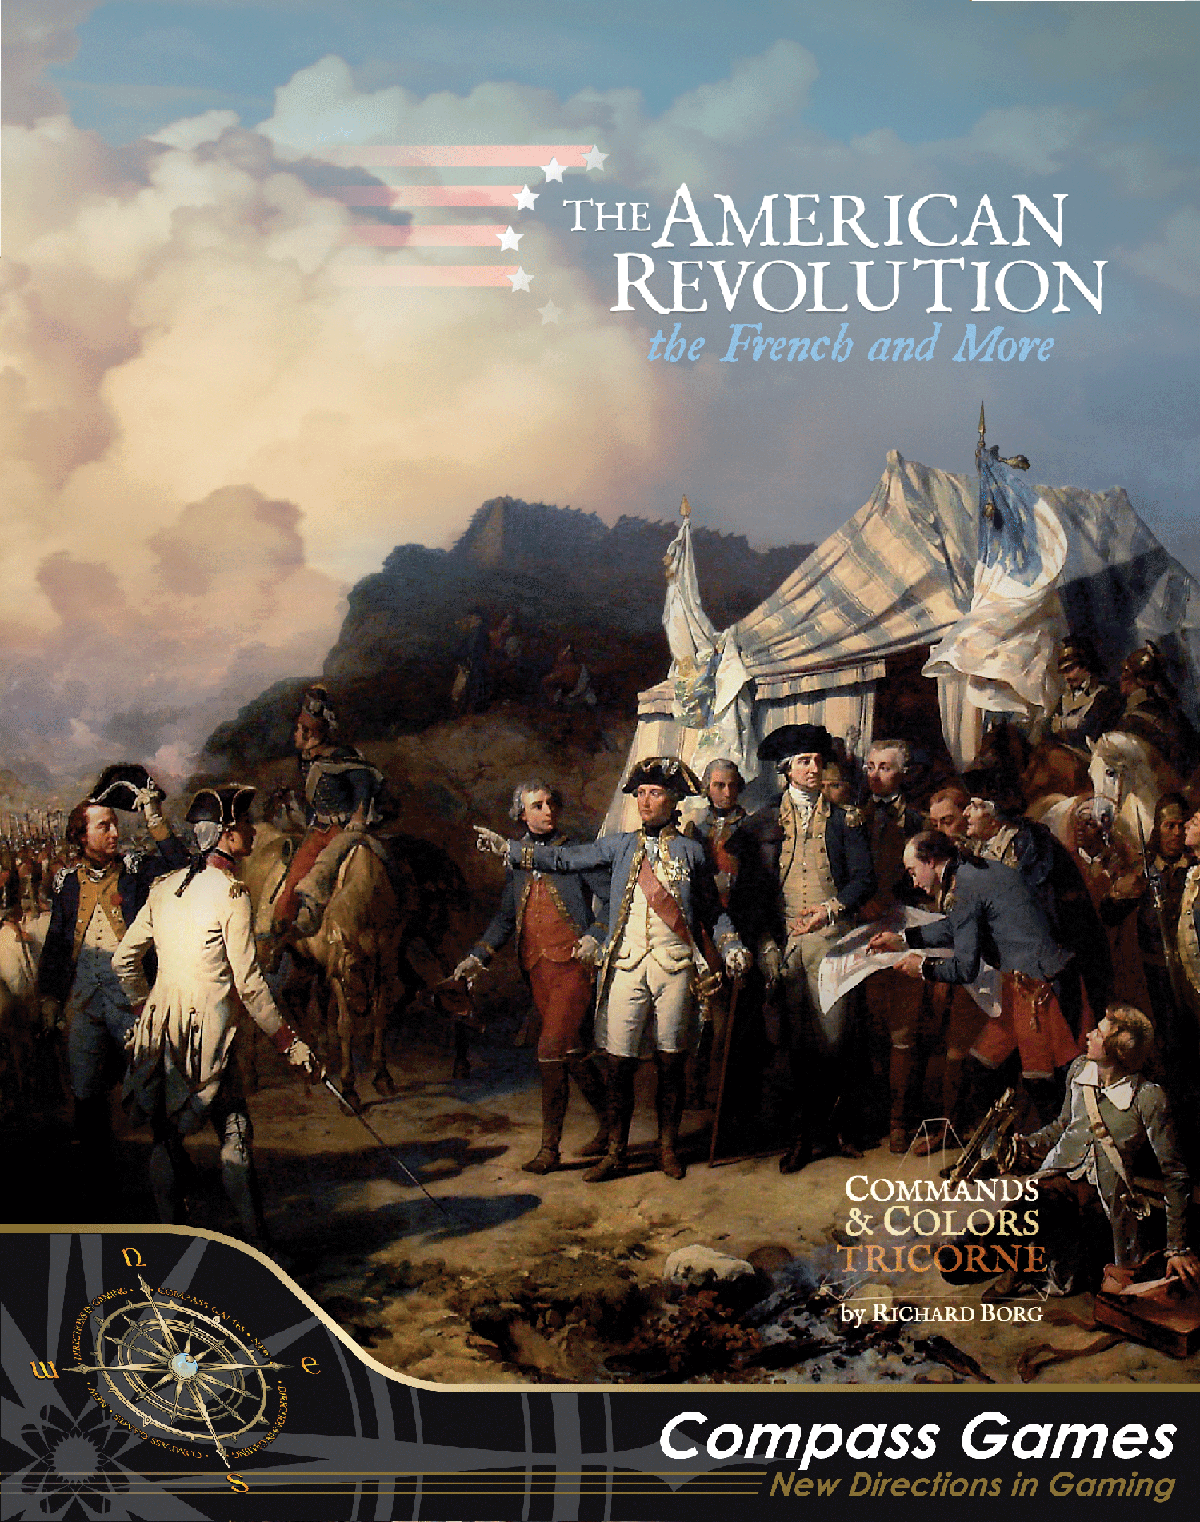 Commands & Colors: Tricorne Expansion – The American Revolution War Expansion Kit 1